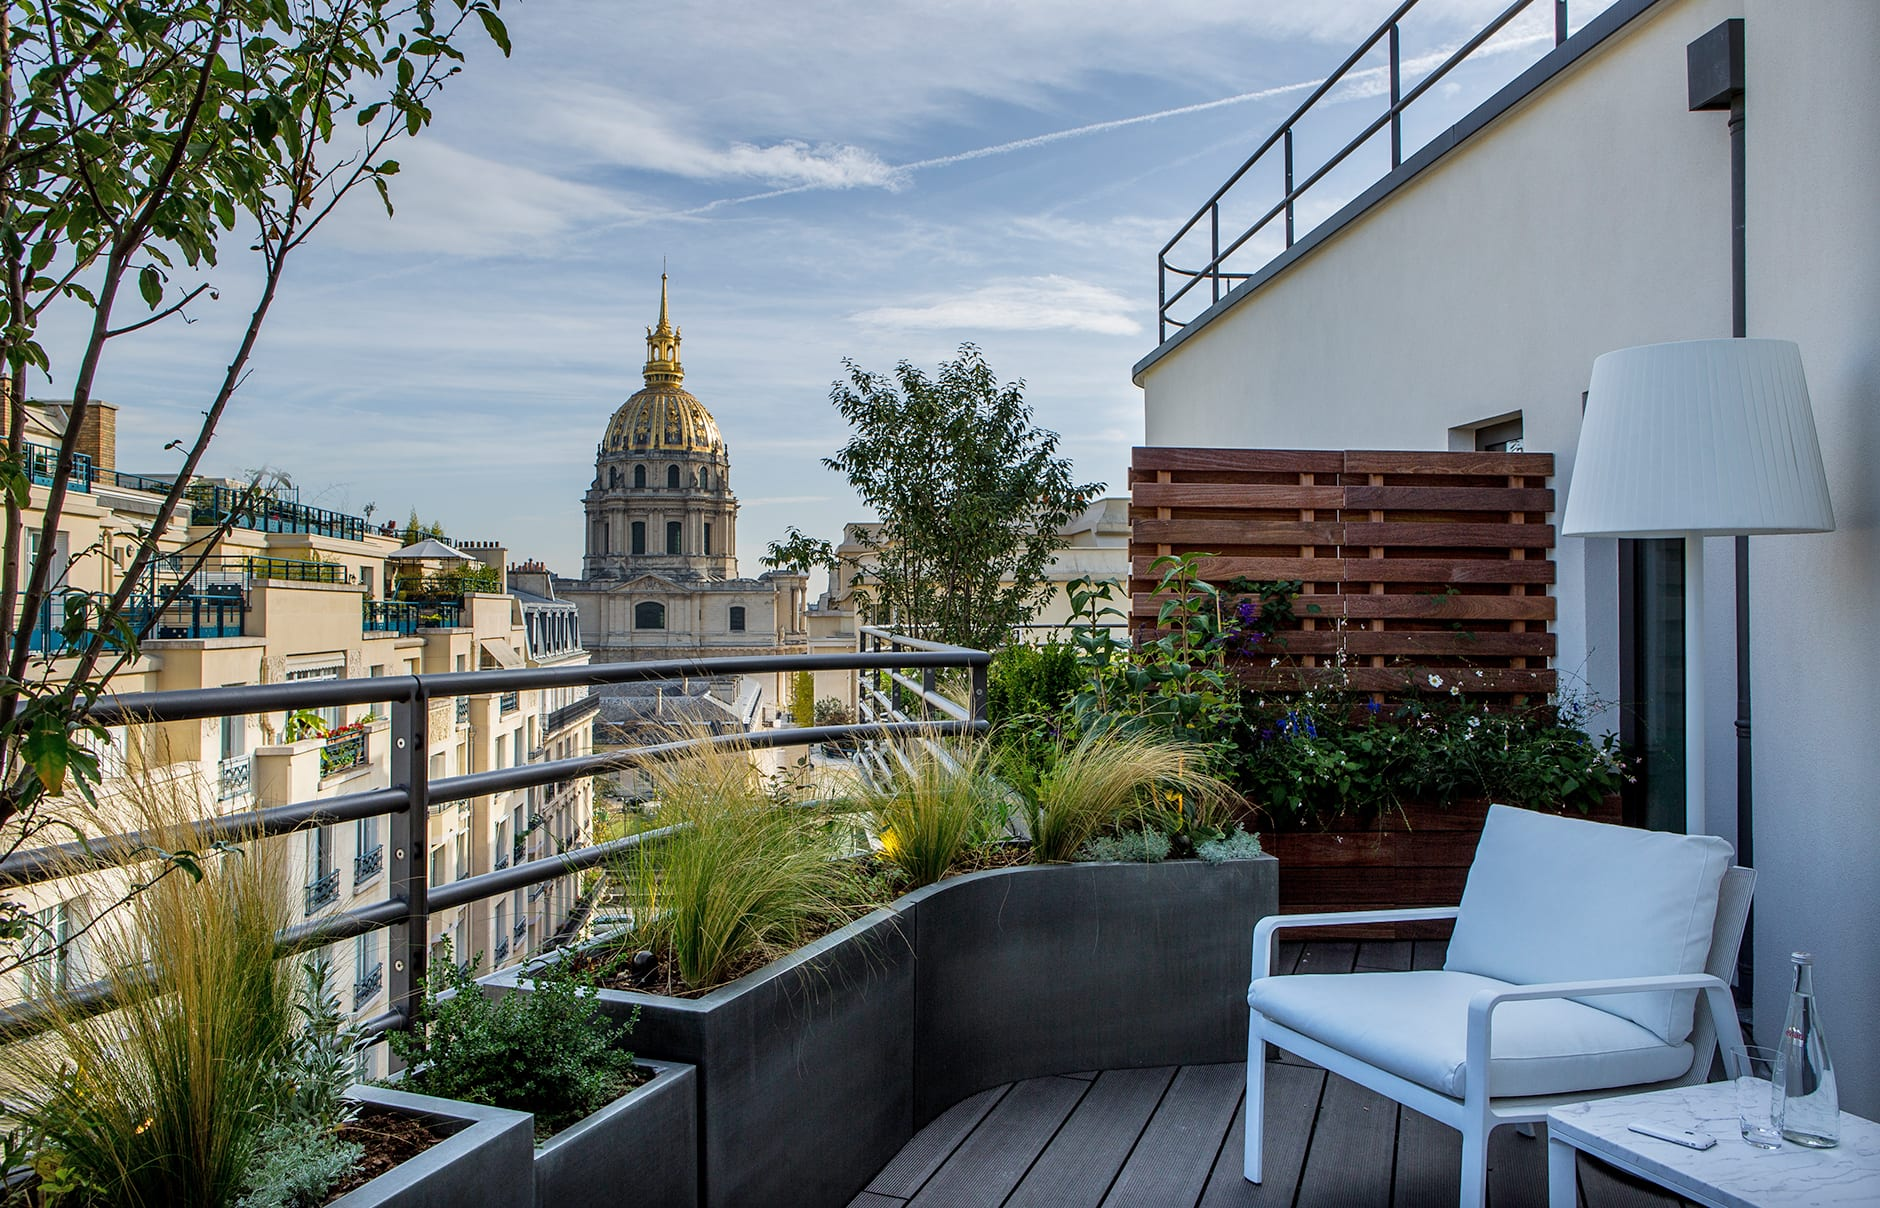 Le Cinq Codet, Paris, France. © Le Cinq Codet